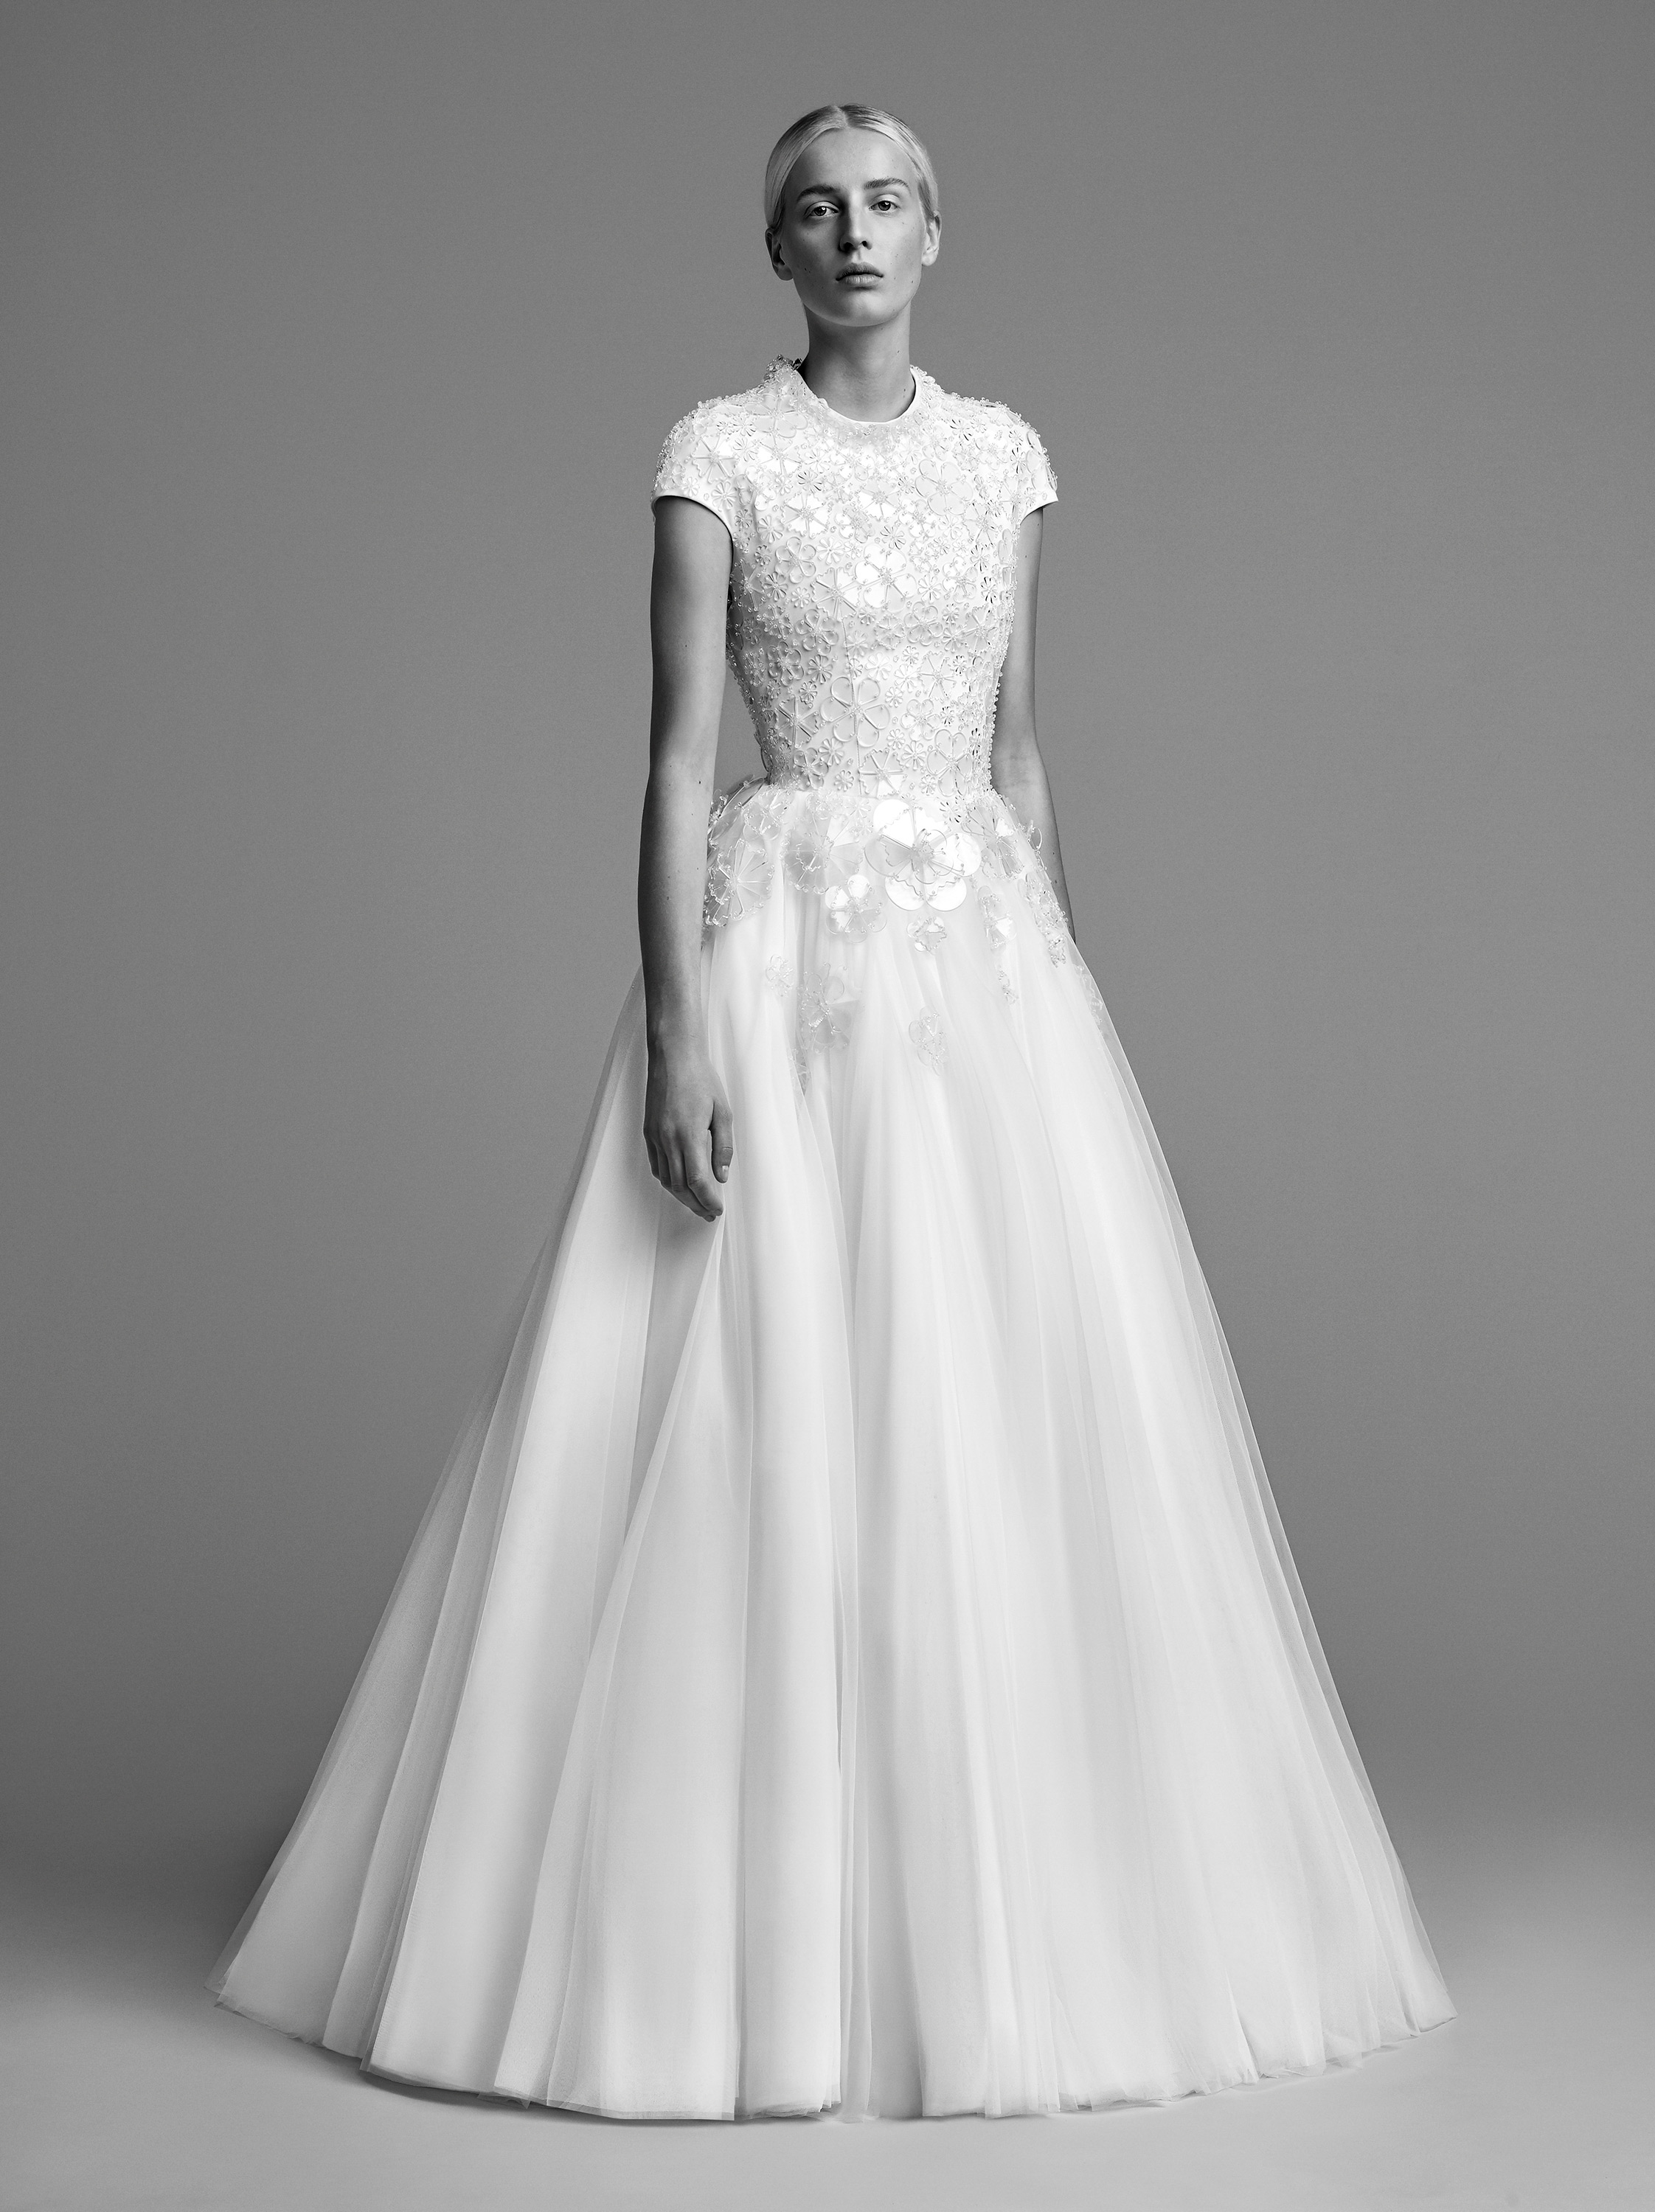 viktor rolf wedding dress fall 2018 a-line tulle cap sleeve